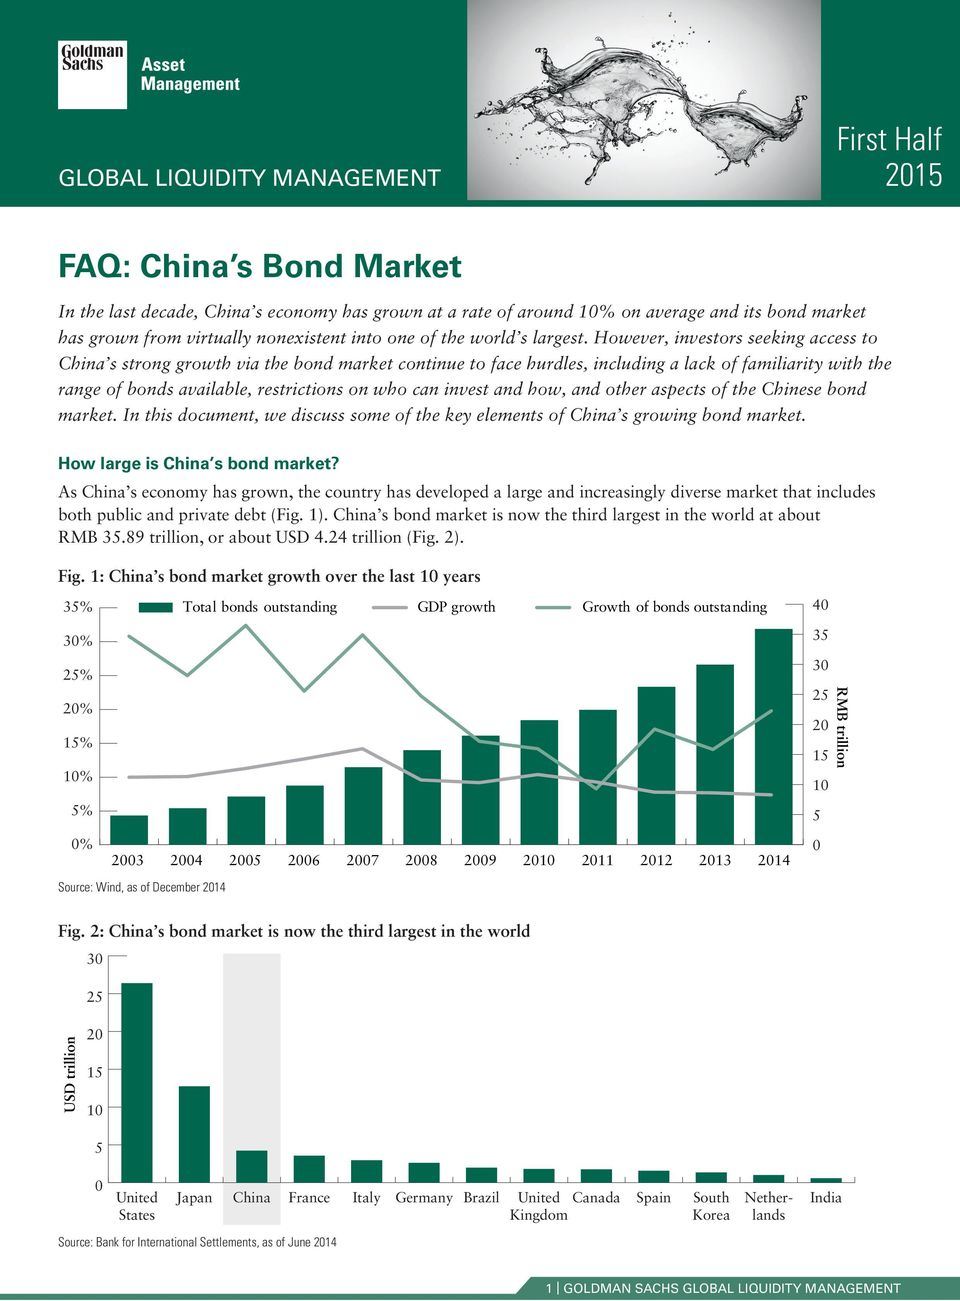 However, investors seeking access to China s strong growth via the bond market continue to face hurdles, including a lack of familiarity with the range of bonds available, restrictions on who can